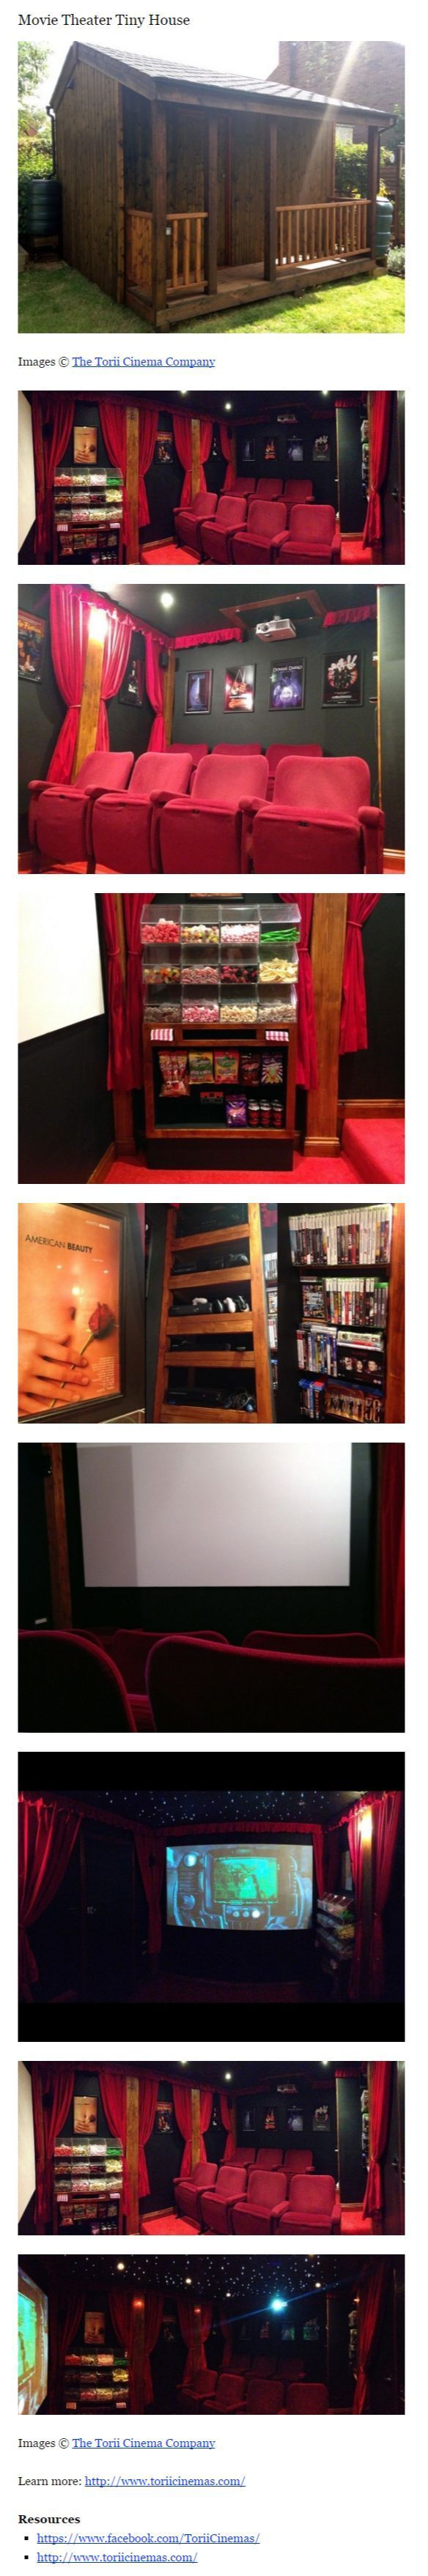 movie theater tiny house thisisawesome iwantone ubhometeam